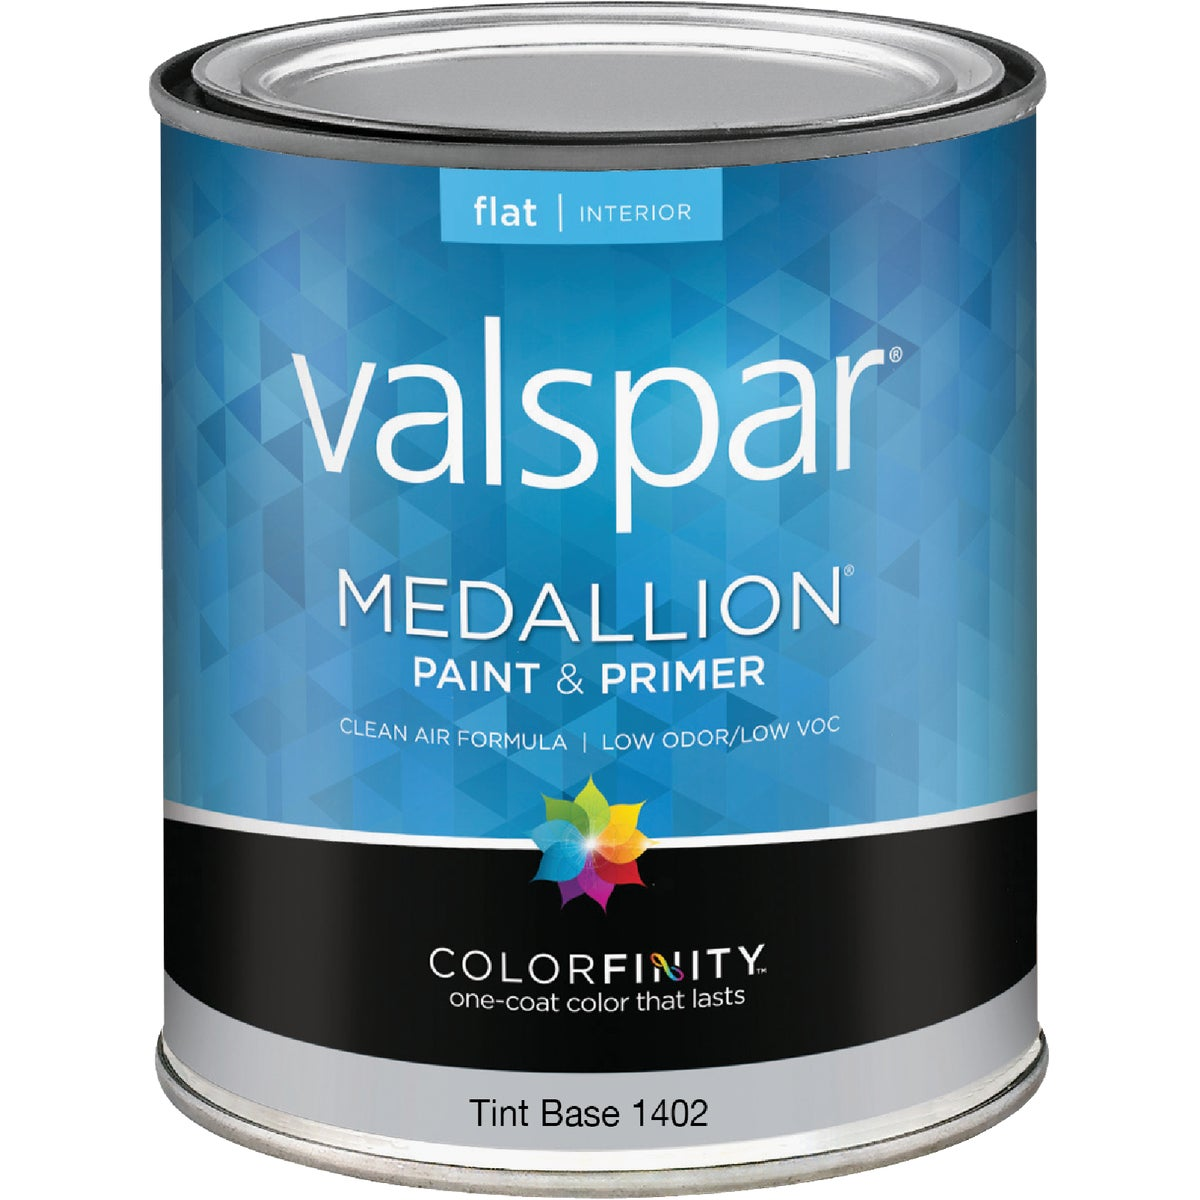 INT FLAT TINT BS PAINT - 027.0001402.005 by Valspar Corp